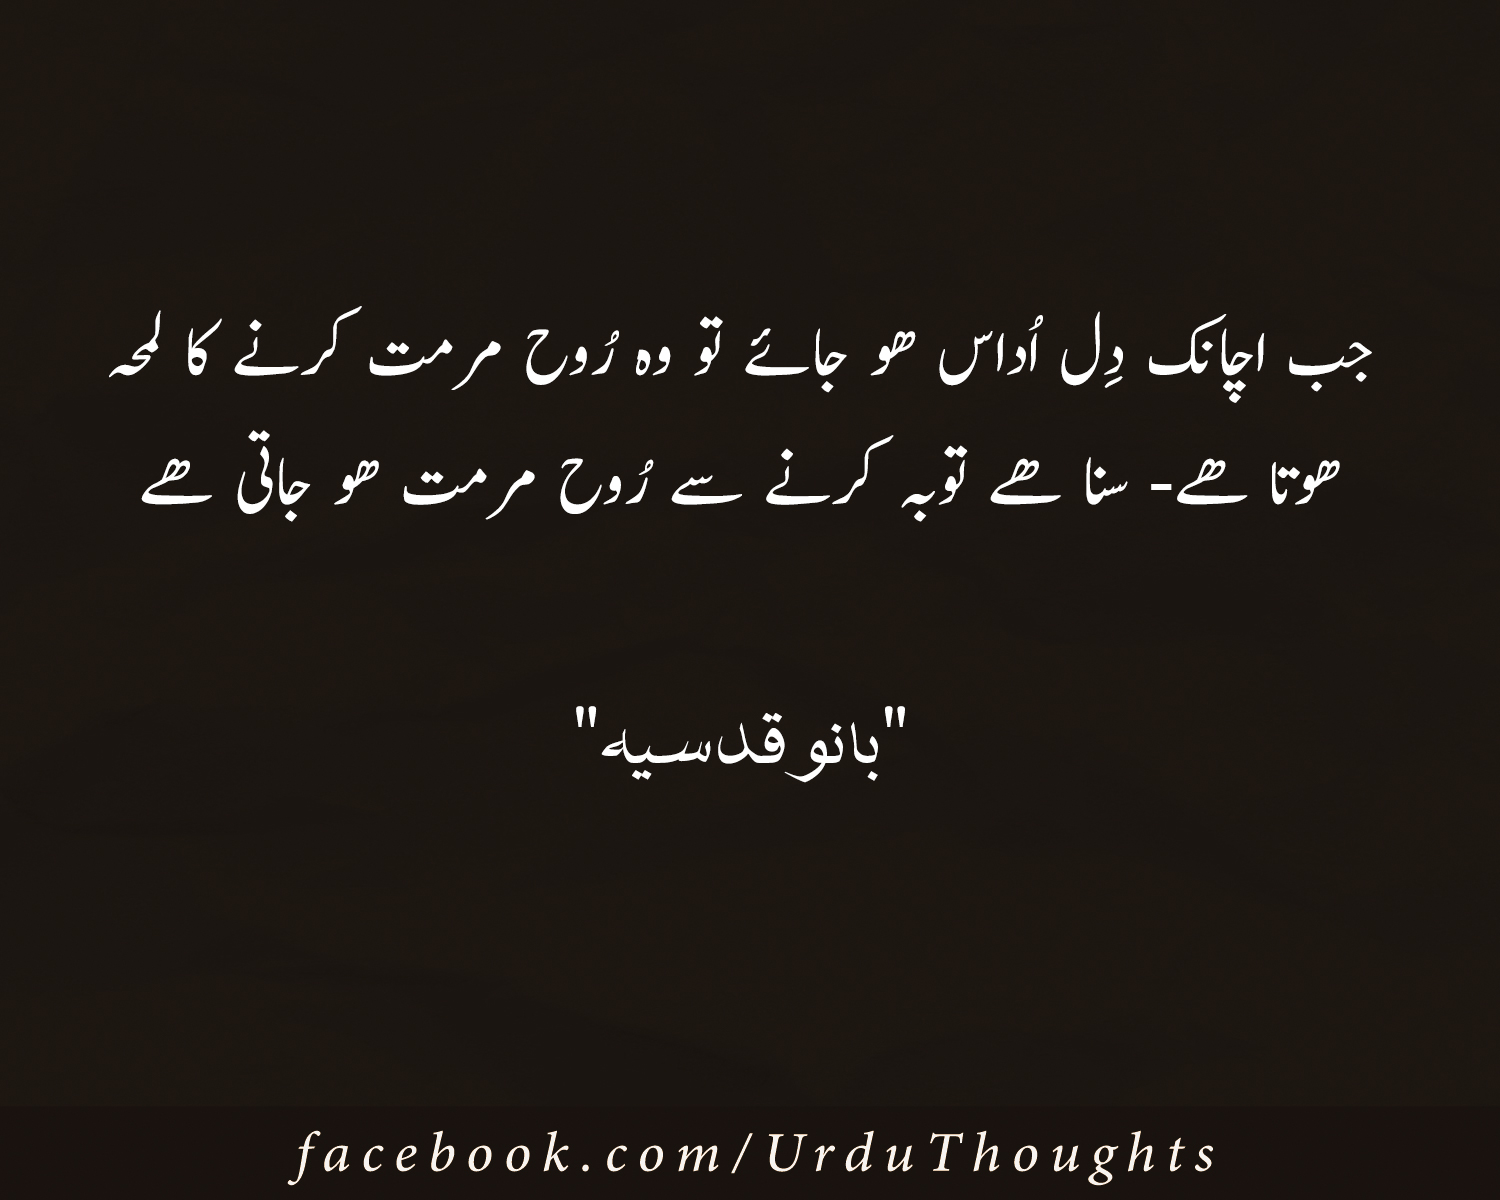 10 best urdu images beautiful quotes for life urdu for Bano qudsia quotes